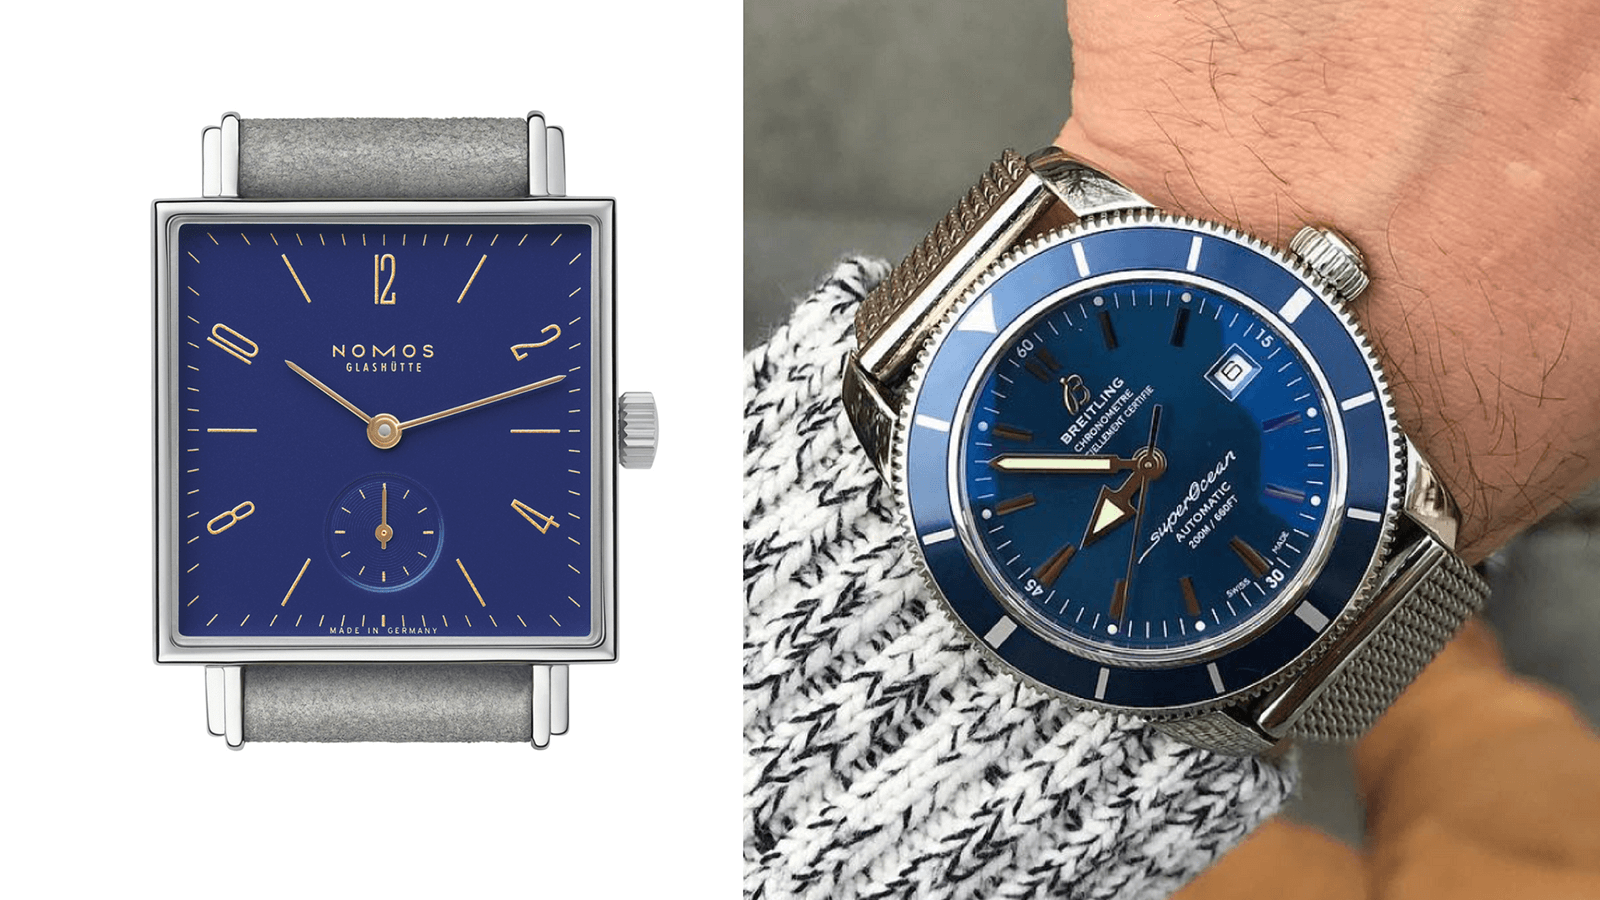 ASKTNH LIVE: Talking Square Watches, Milanese Bracelets, & Watch Stories